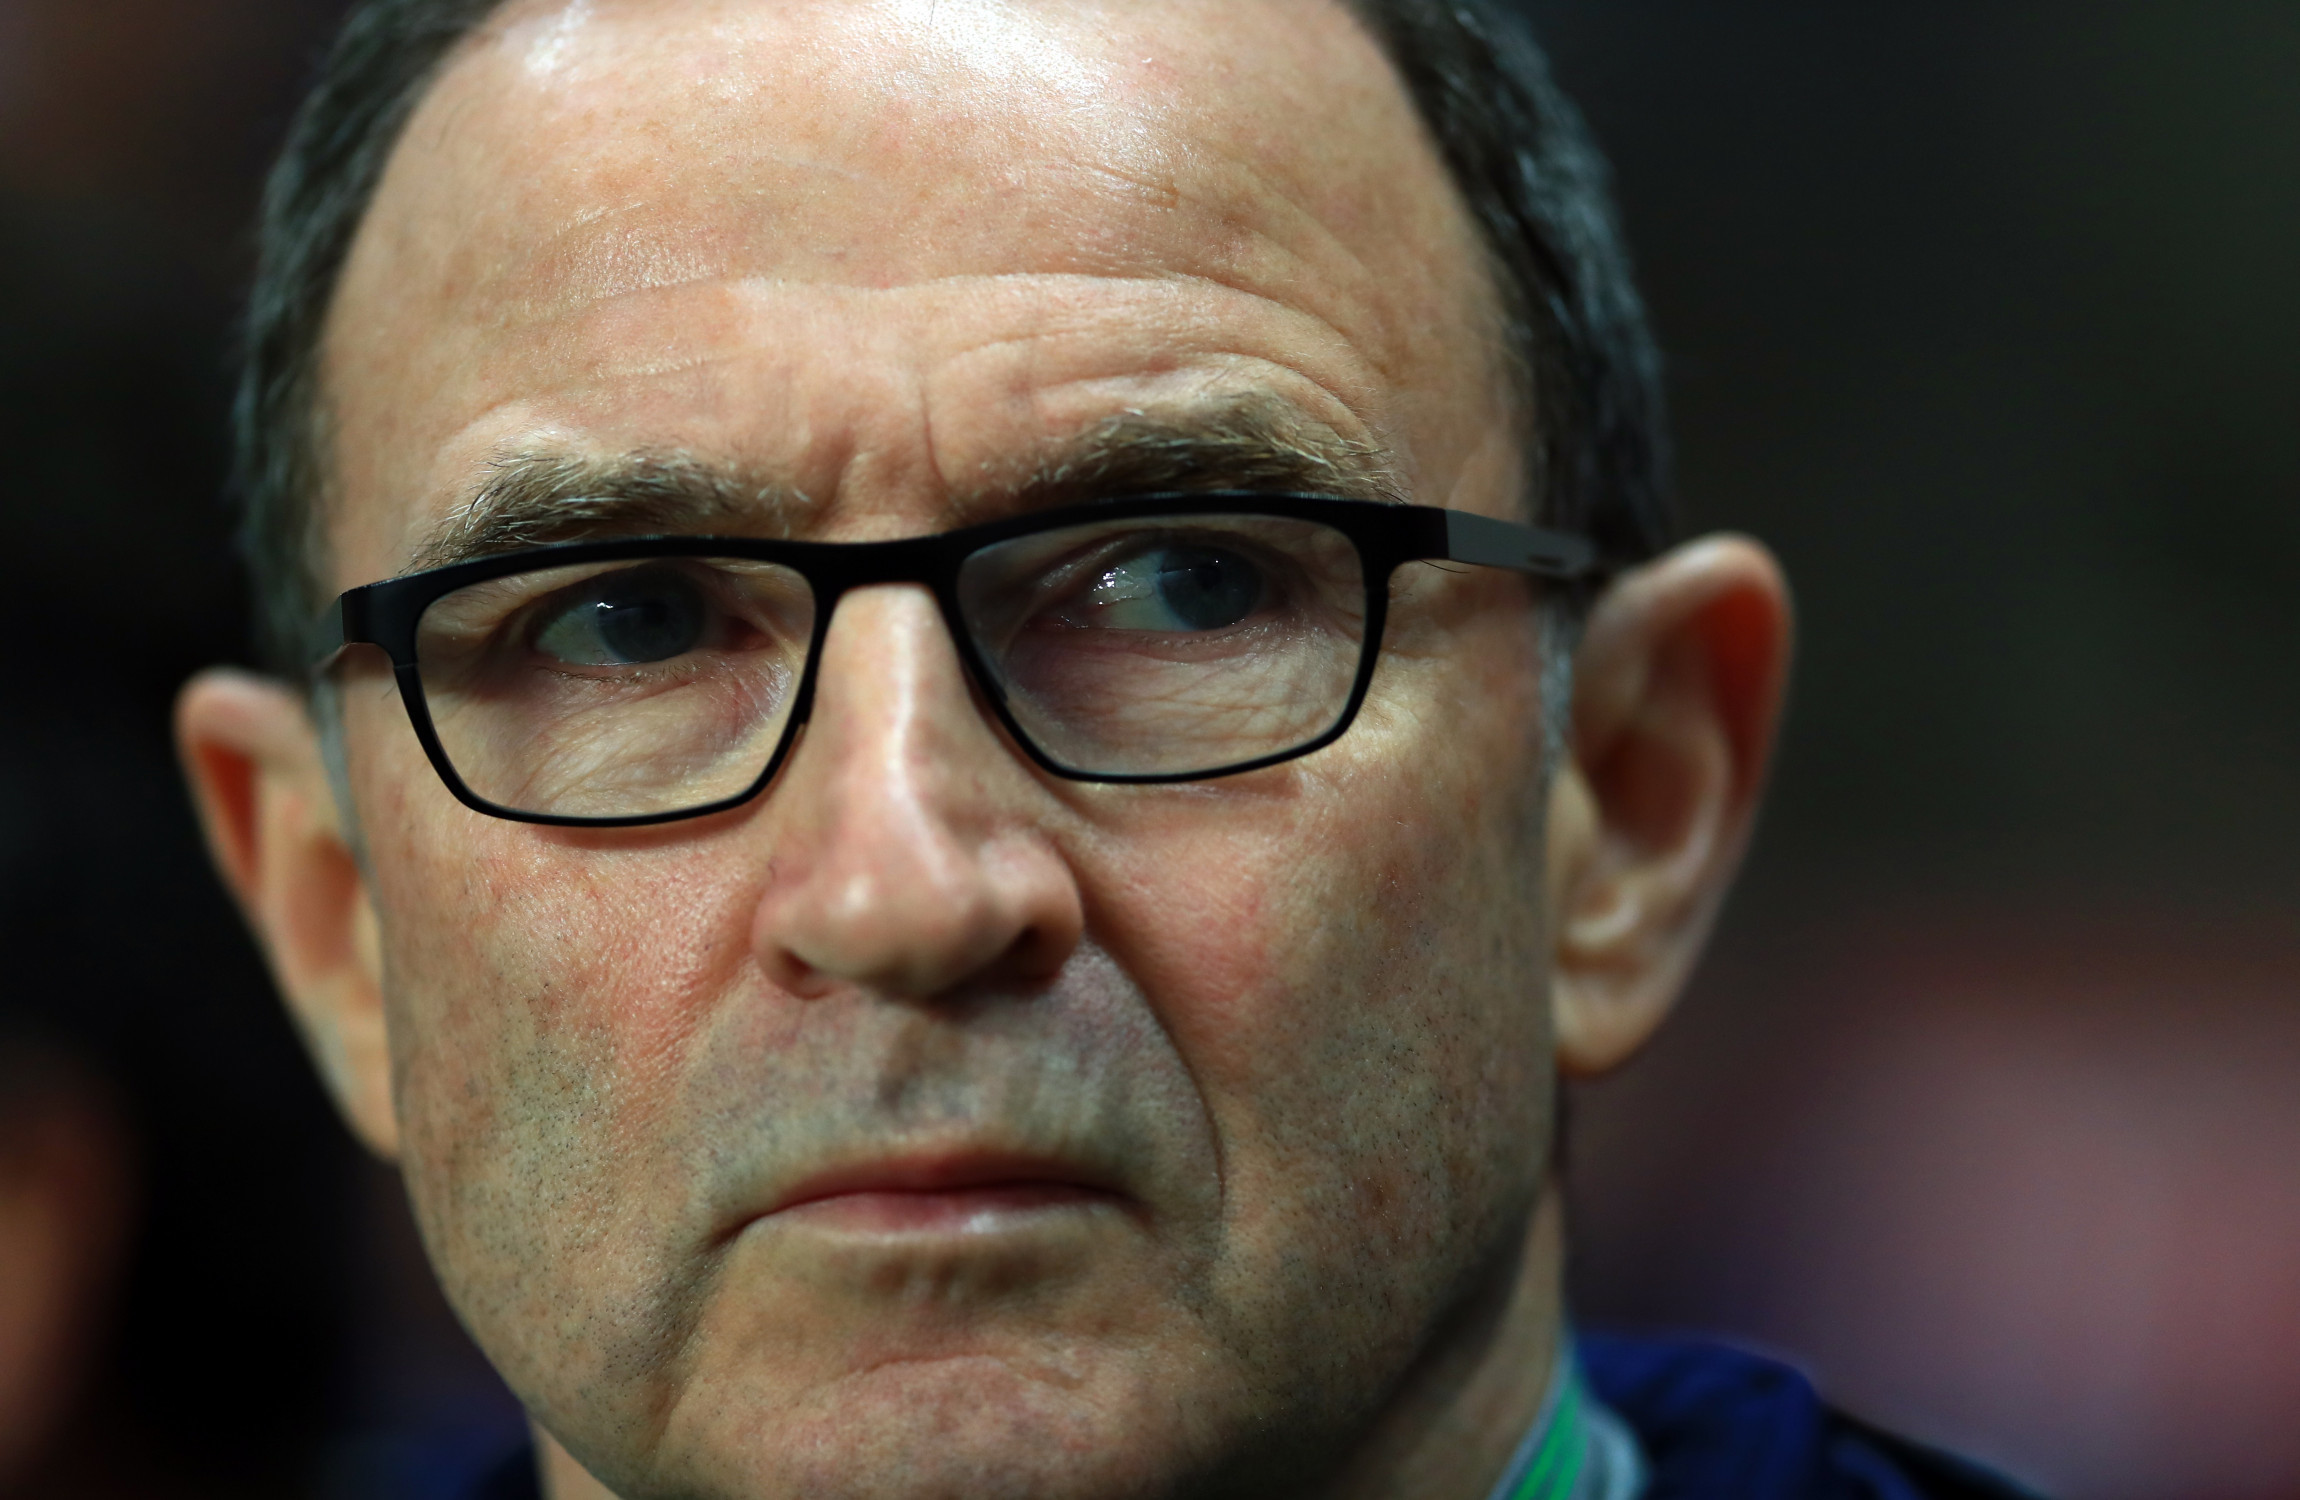 Martin O'Neill's future remains unresolved